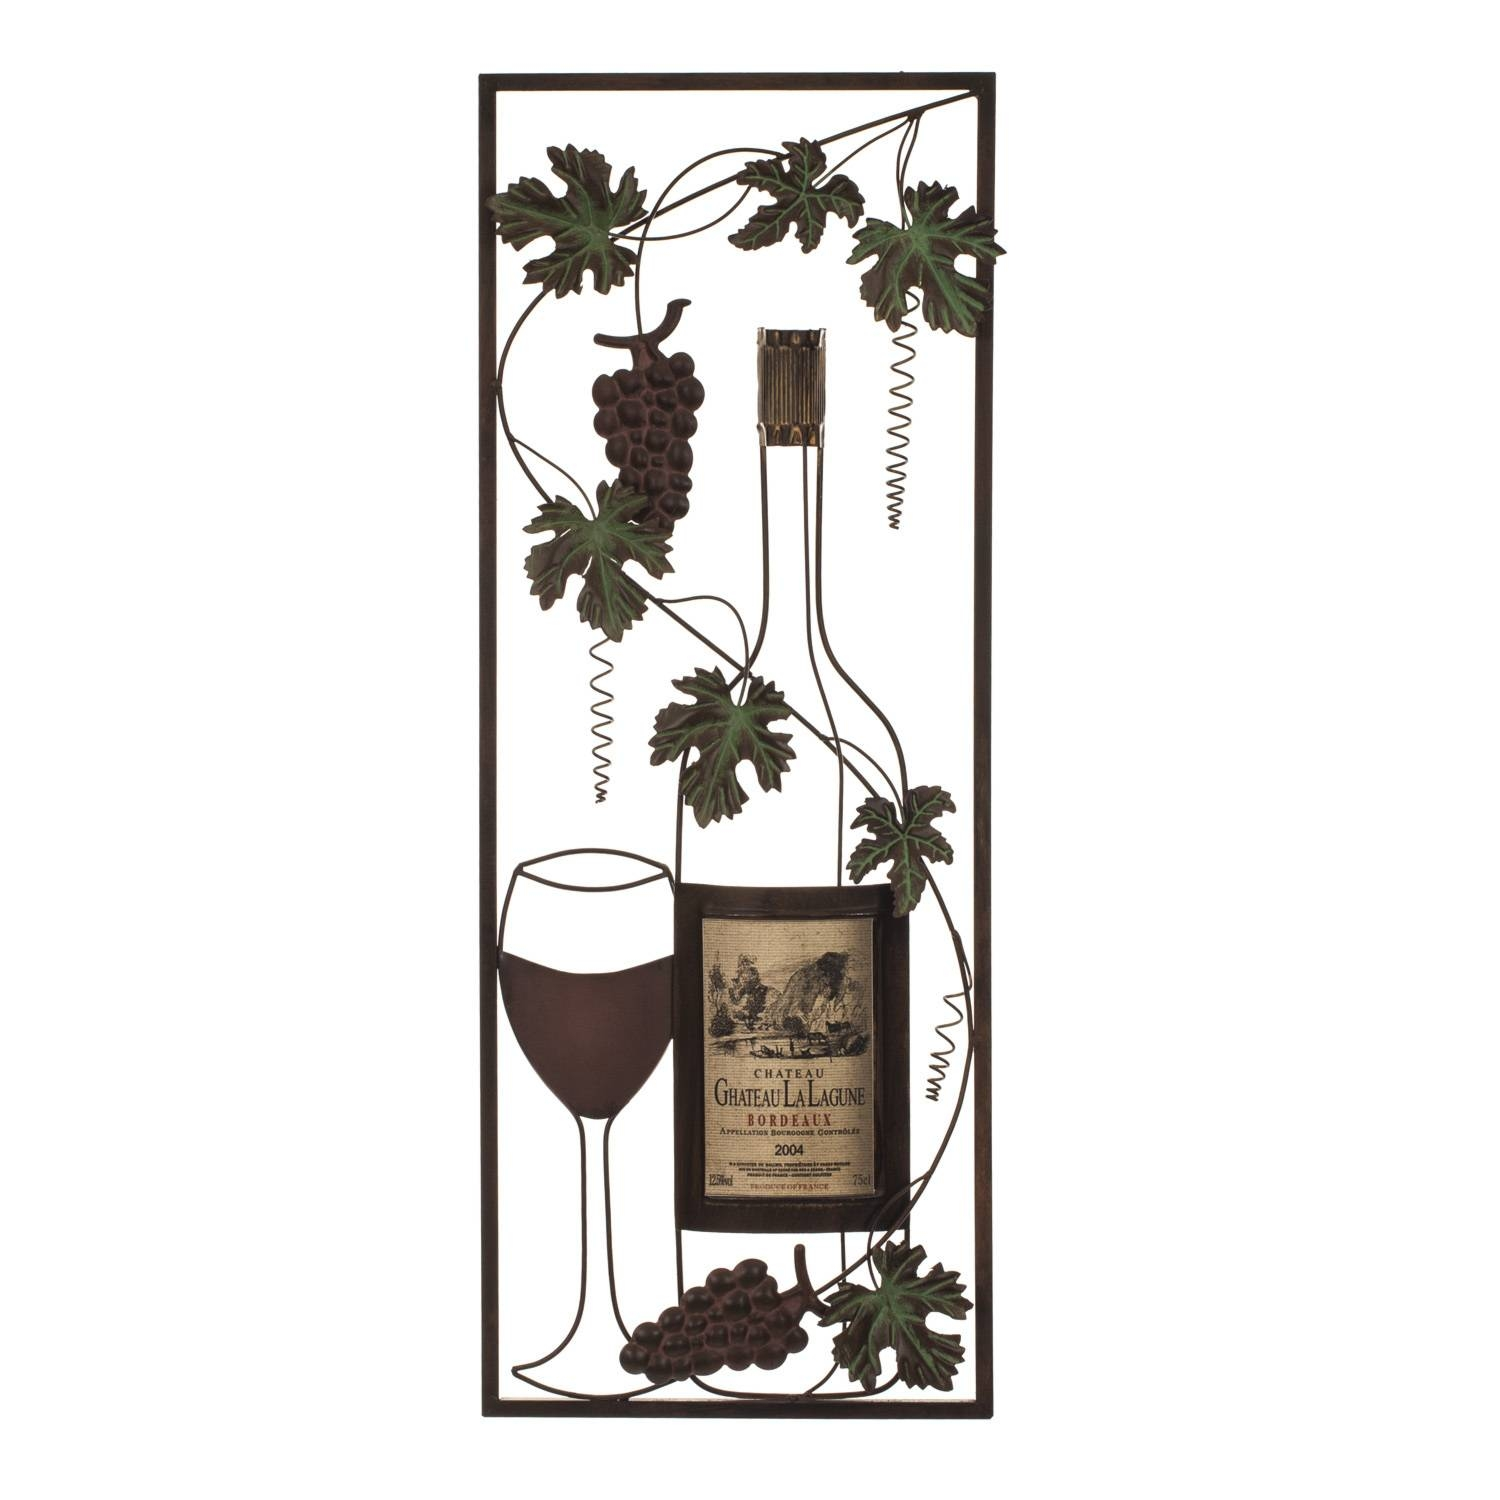 Vintage Wine Metal Wall Art Pertaining To 2018 Wine Metal Wall Art (View 16 of 20)